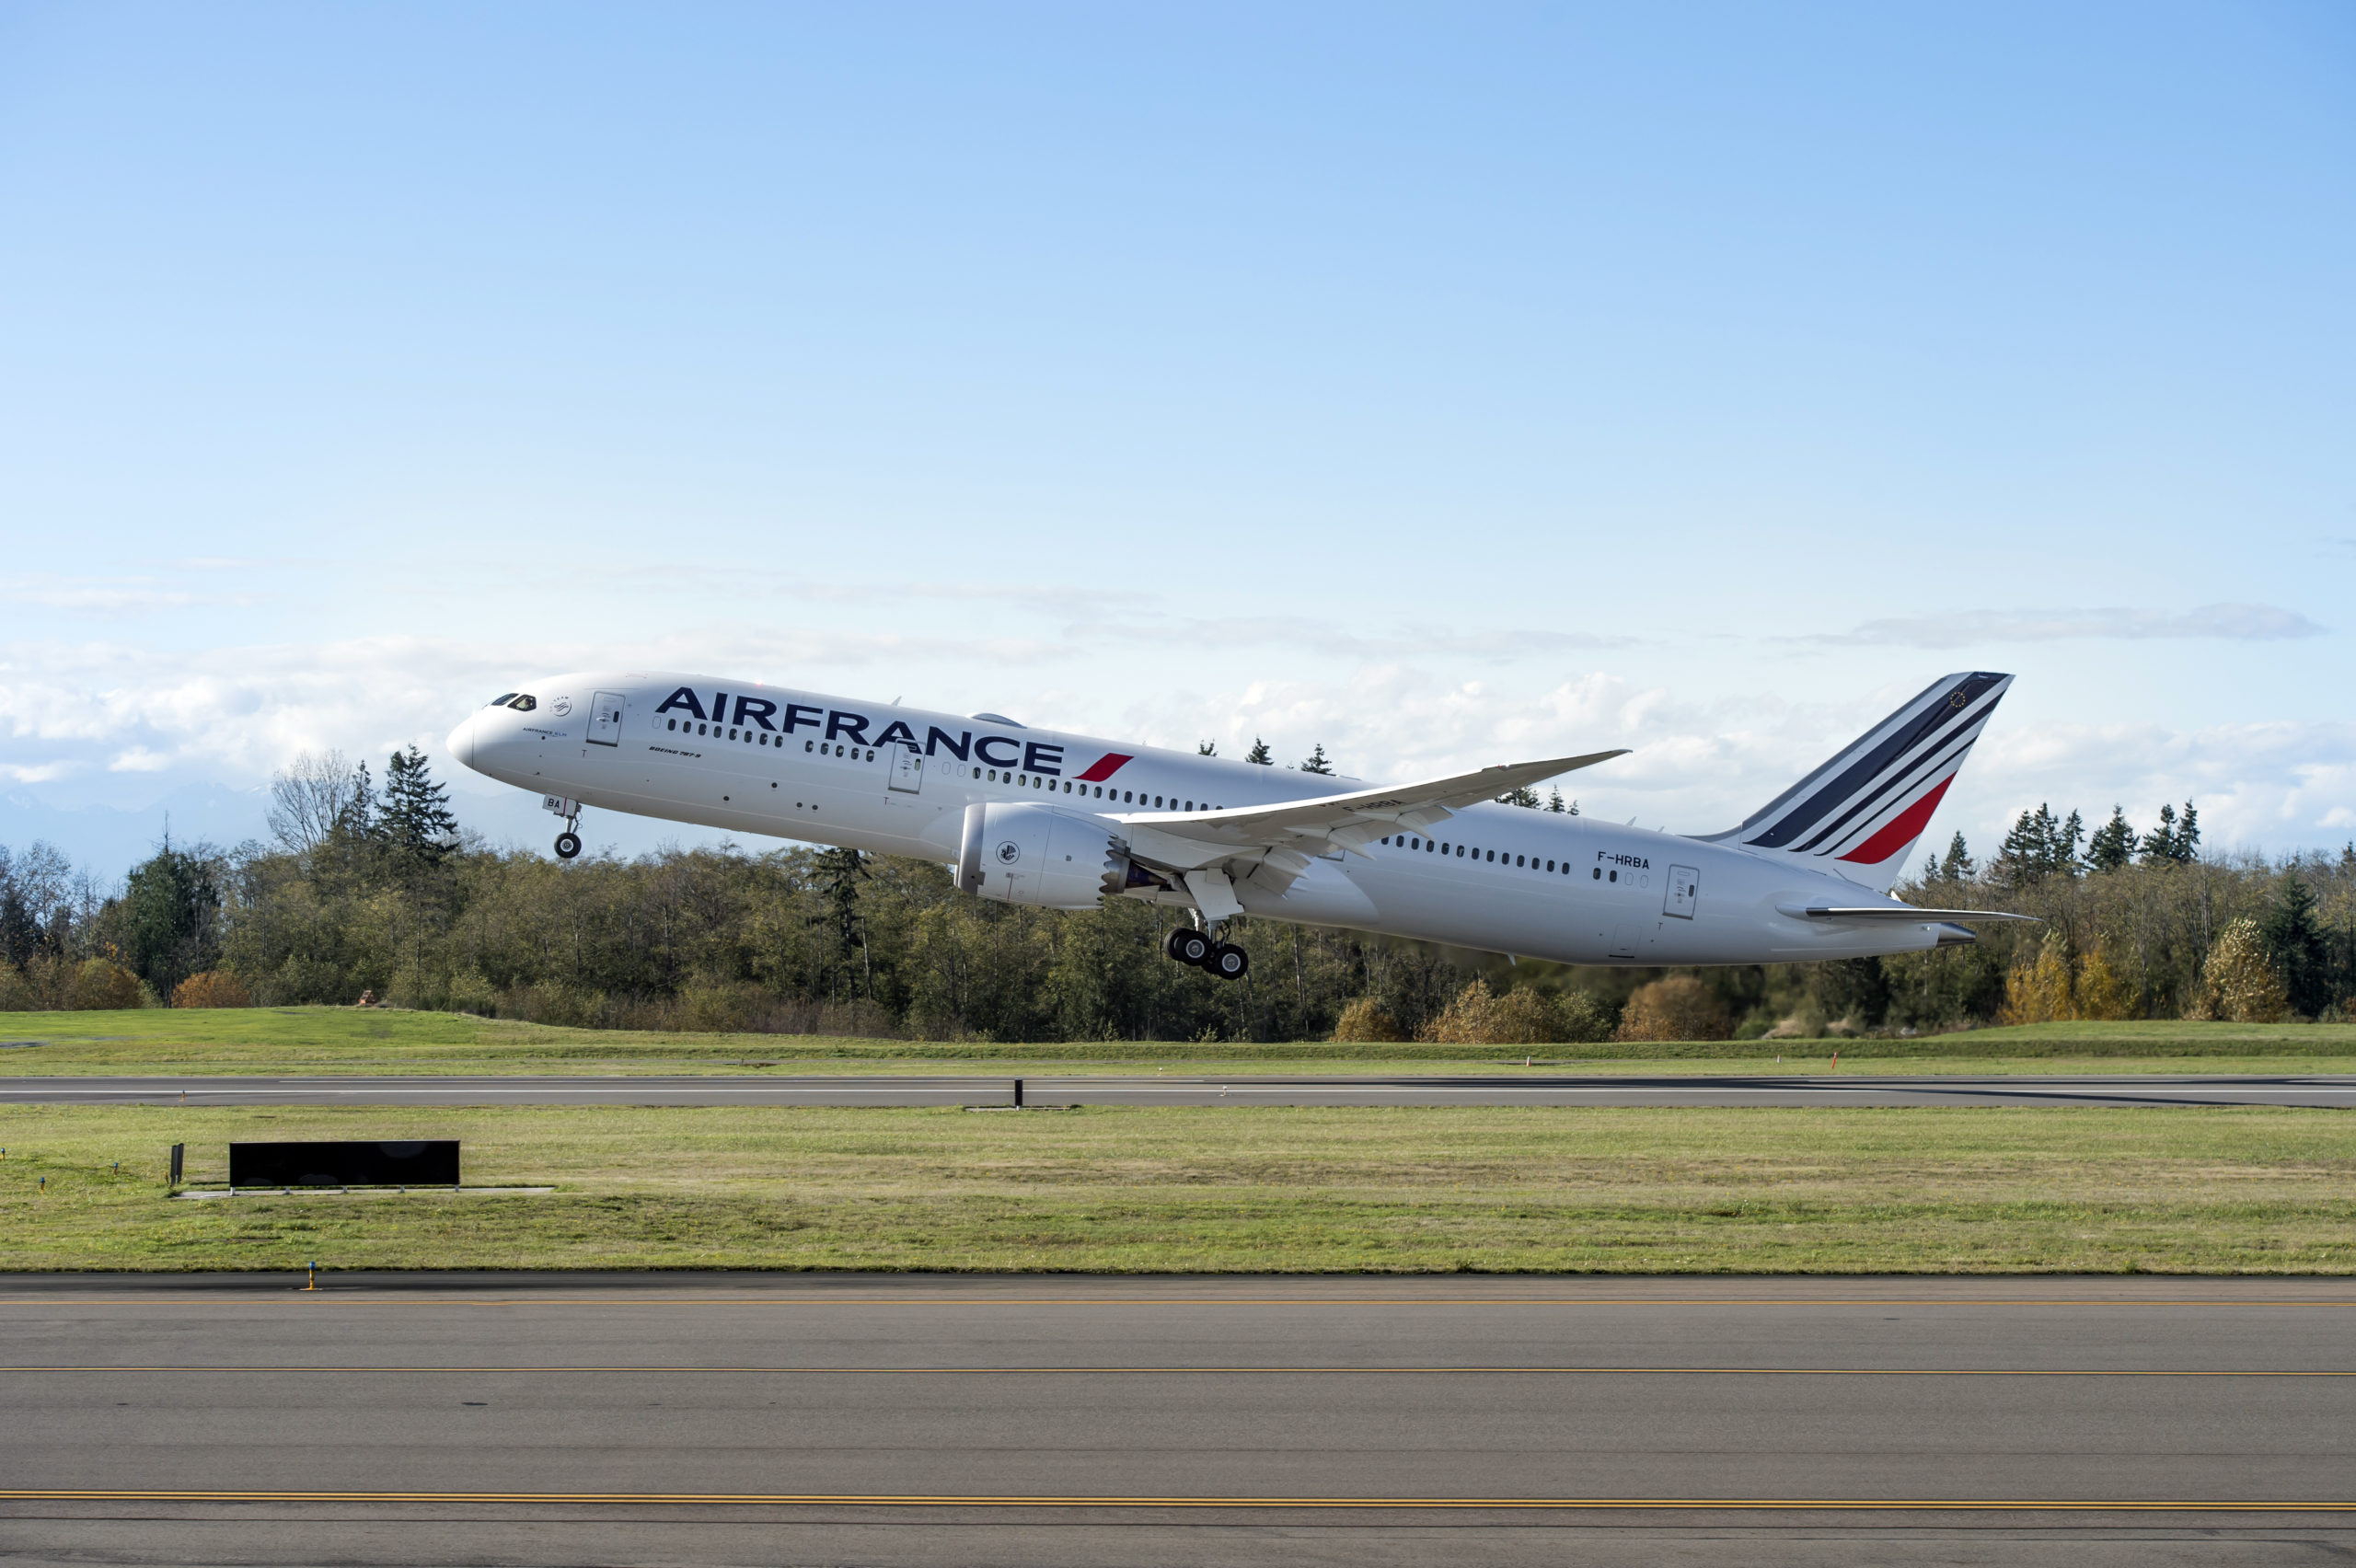 Air France (AFA) 787-8 Assembly and Paint Photo Support *AIR PROMO*THOMPSON MICHAEL H (1659126) rms303337 nef2016 nef2016 nef2016 nef2016 nef2016